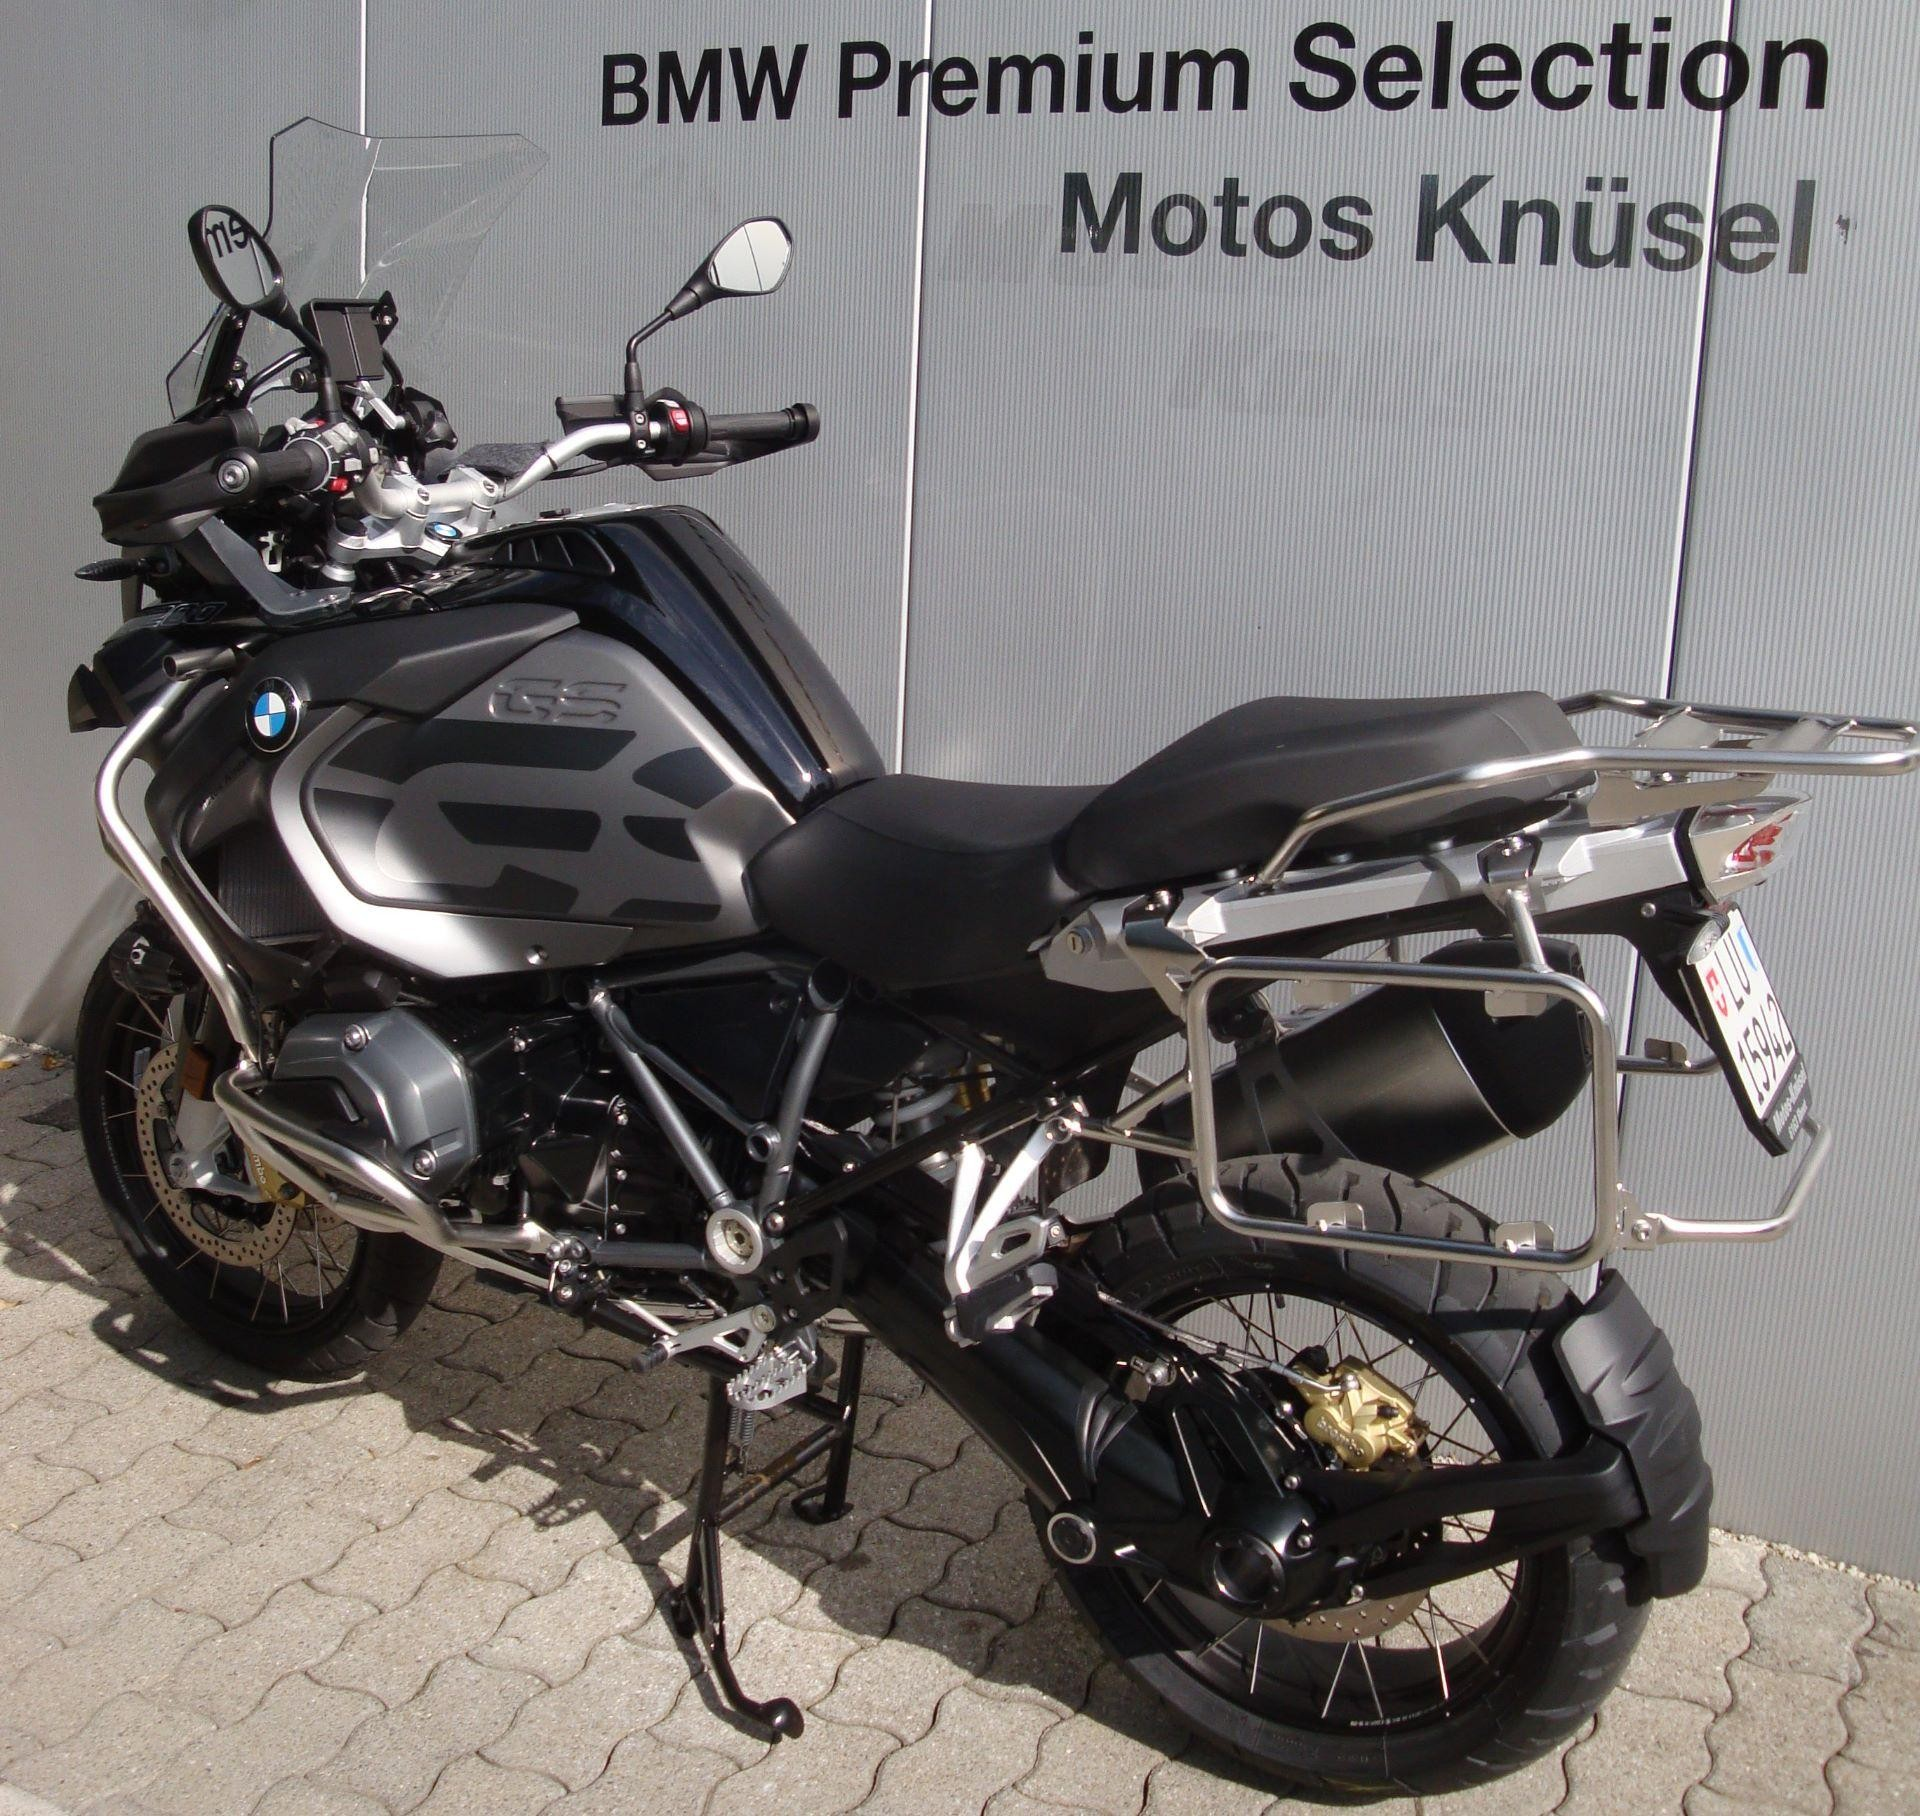 motorrad occasion kaufen bmw r 1200 gs adventure abs mj. Black Bedroom Furniture Sets. Home Design Ideas